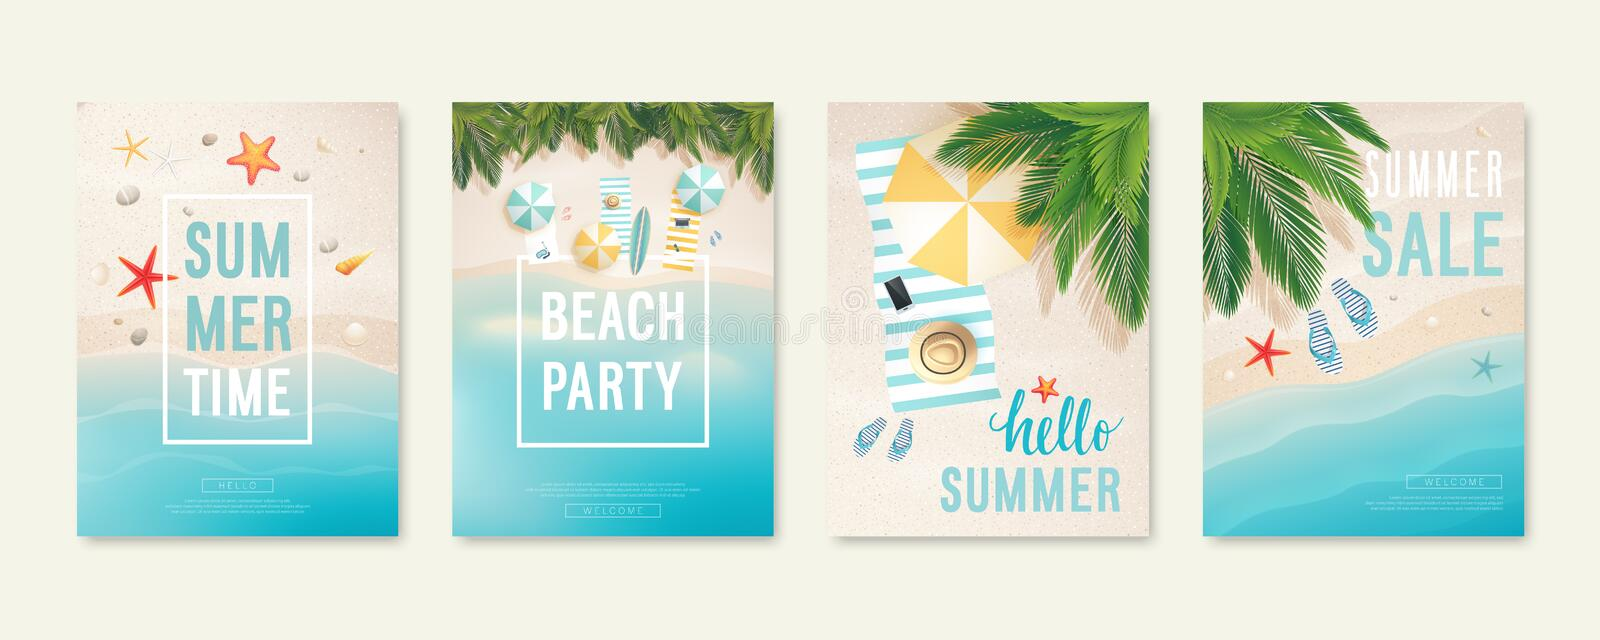 Tropical beach cards with sand, sea and palm trees. Summer flyers with starfish, flip flops and beach umbrellas. vector illustration